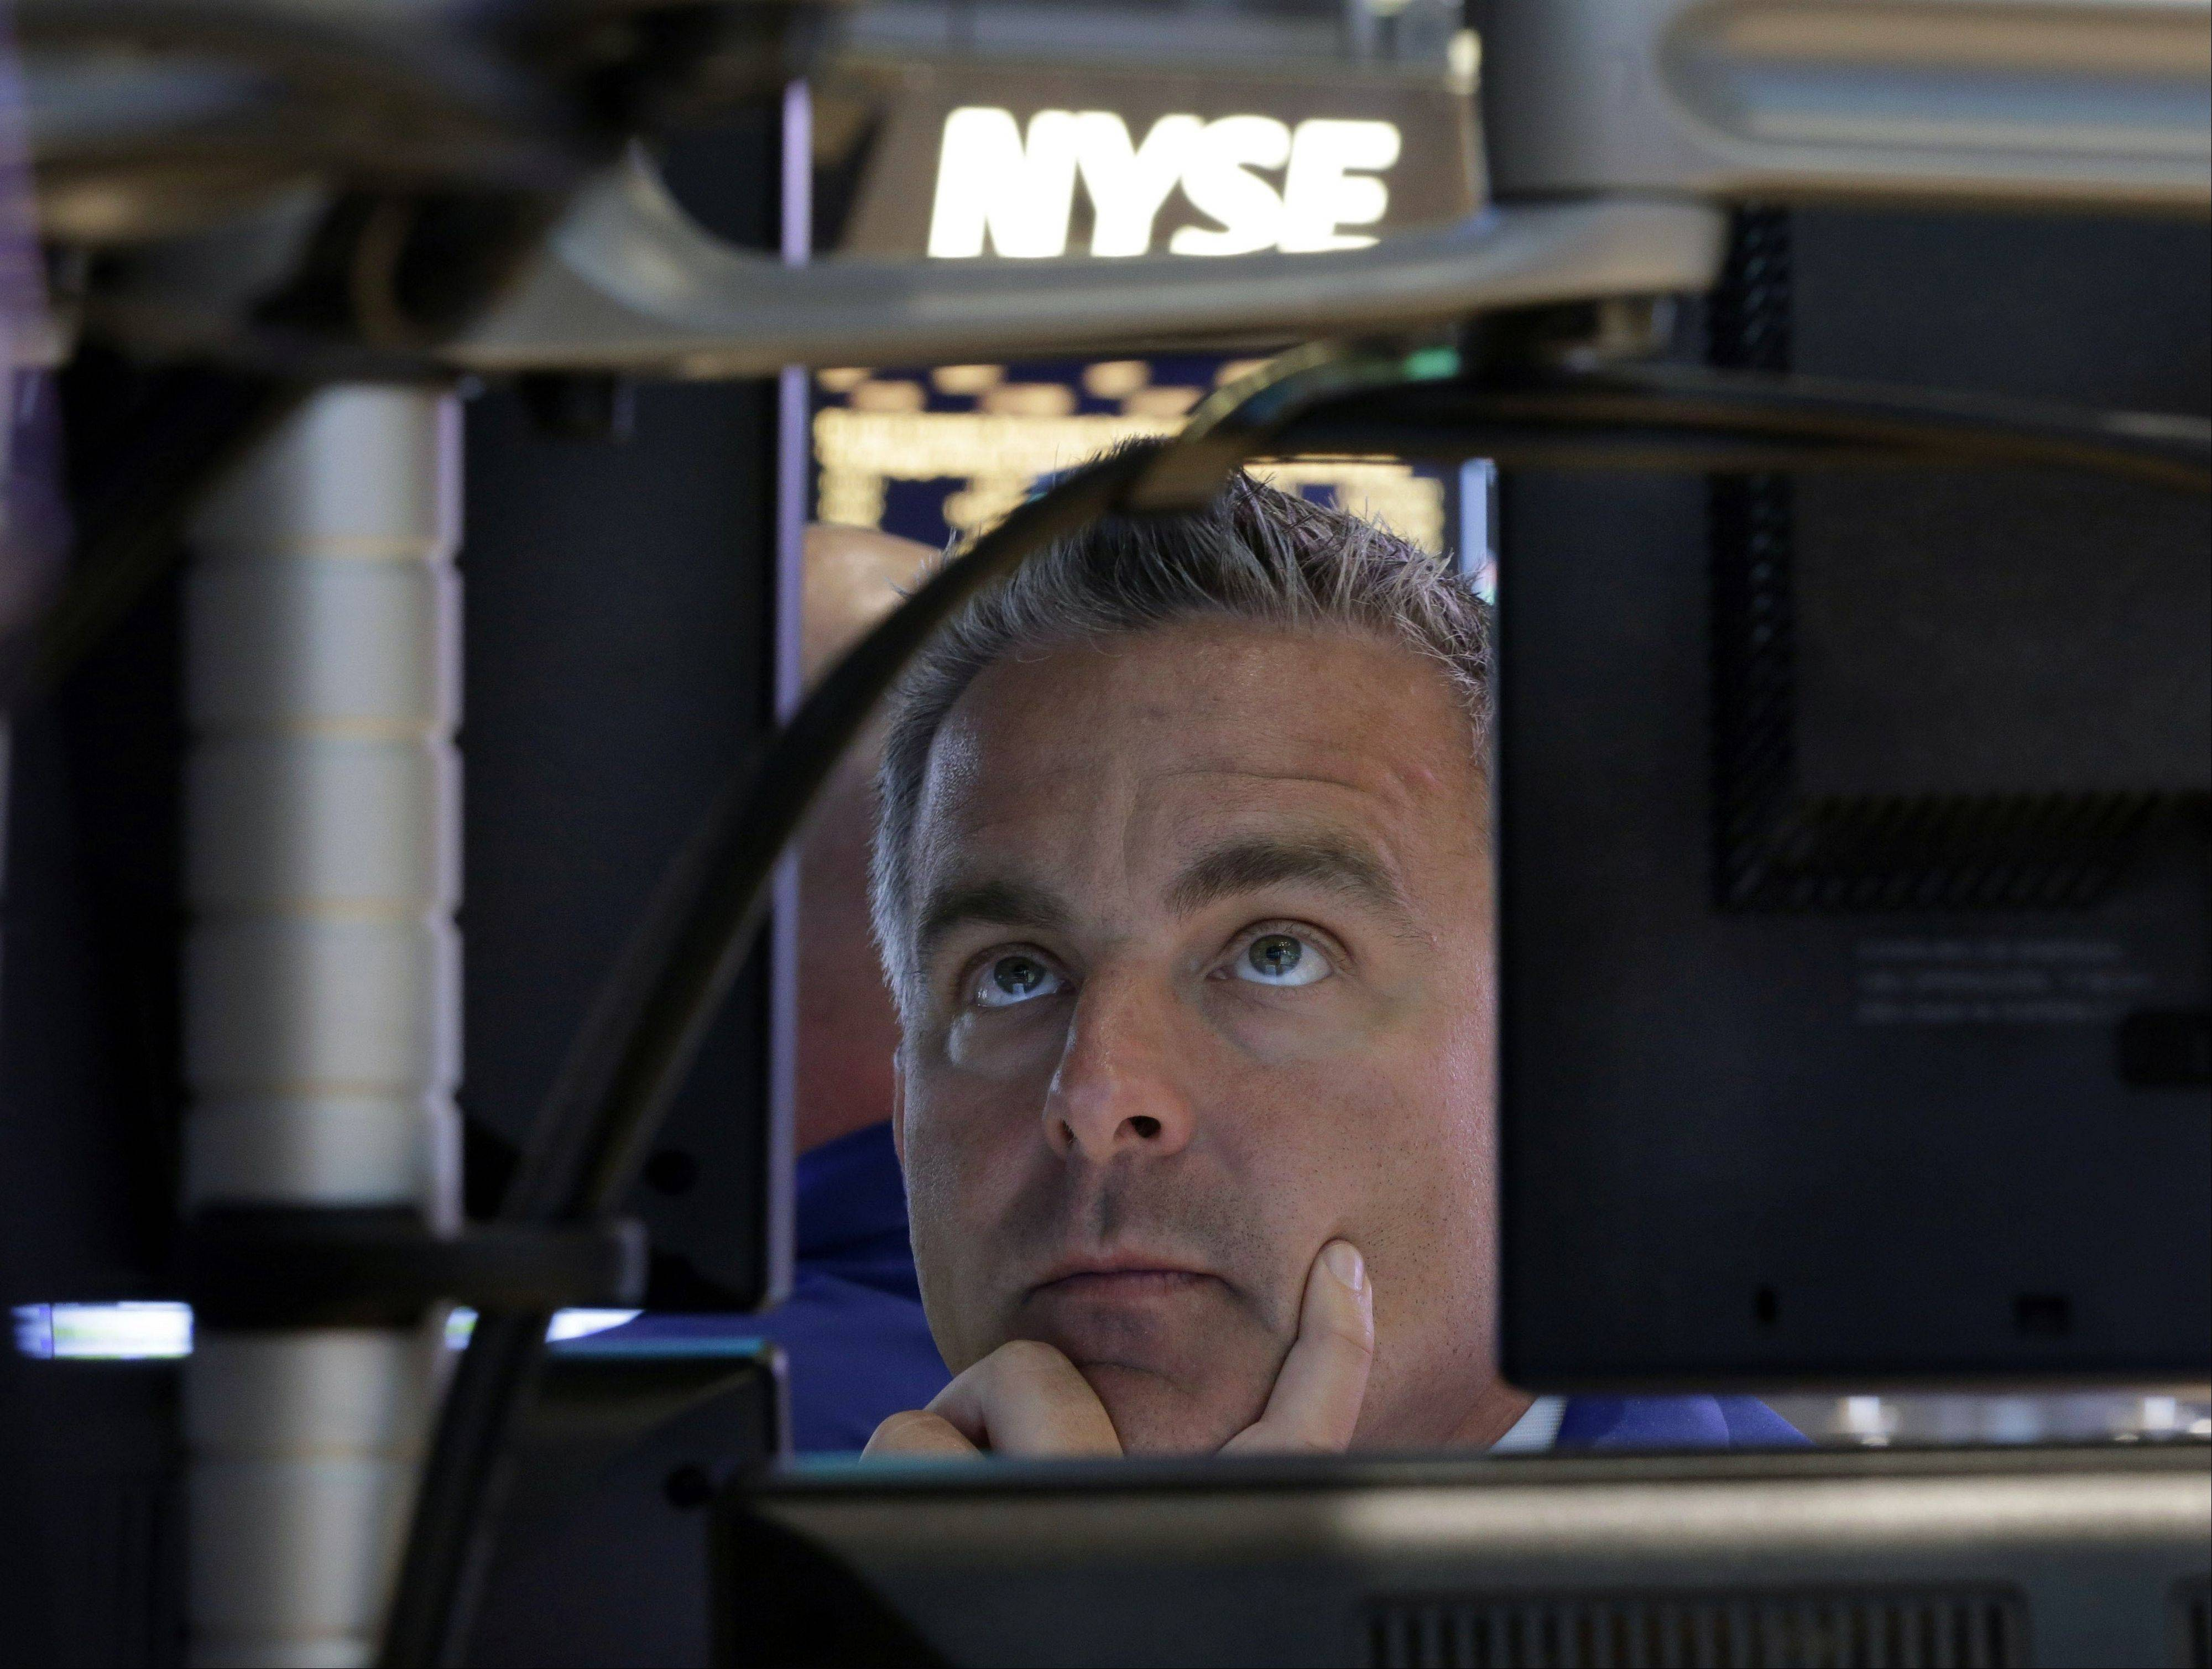 In this Wednesday, Sept. 18, 2013, photo, specialist Christopher Culhane works at his post on the floor of the New York Stock Exchange after the Federal Reserve announcement. Global stock markets surged Thursday after the U.S. Federal Reserve unexpectedly refrained from reducing its massive economic stimulus.